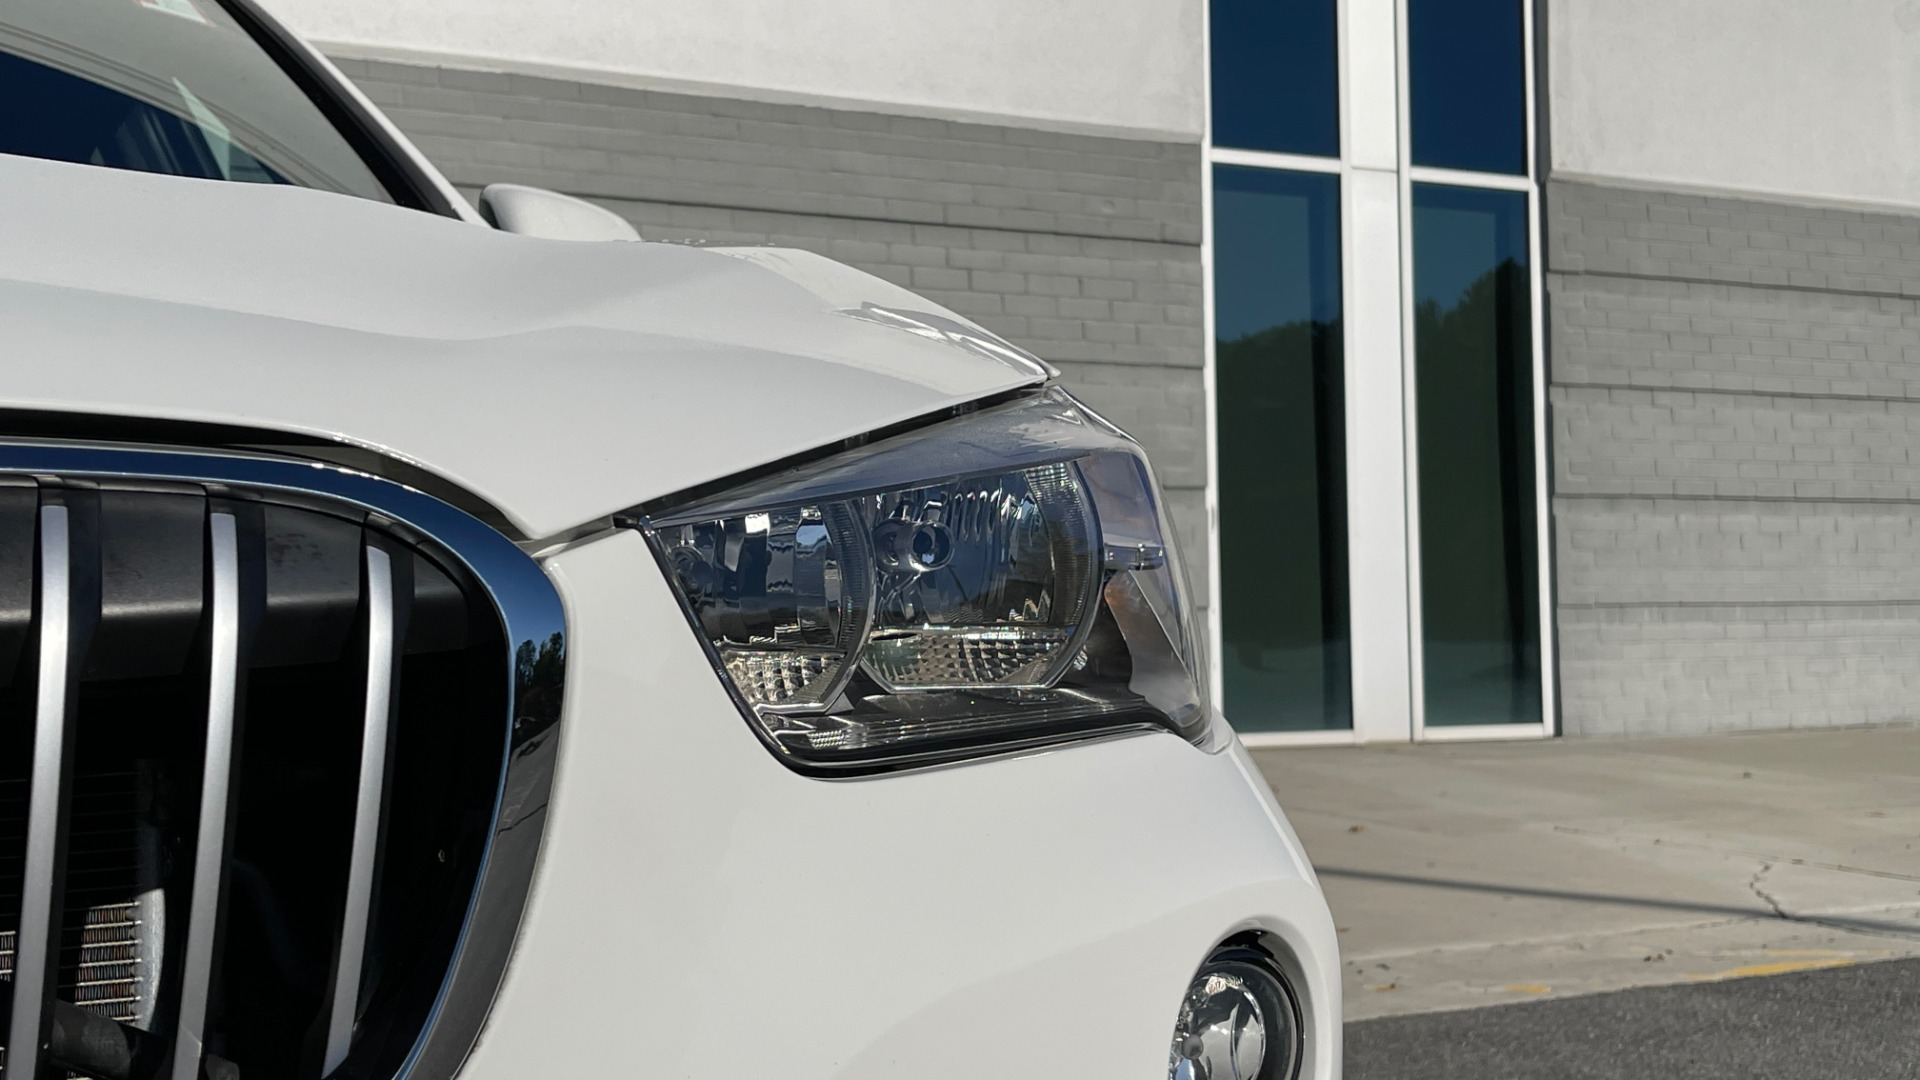 Used 2018 BMW X1 XDRIVE28I / CONV PKG / PANO-ROOF / PARK ASST / REARVIEW for sale $31,995 at Formula Imports in Charlotte NC 28227 13